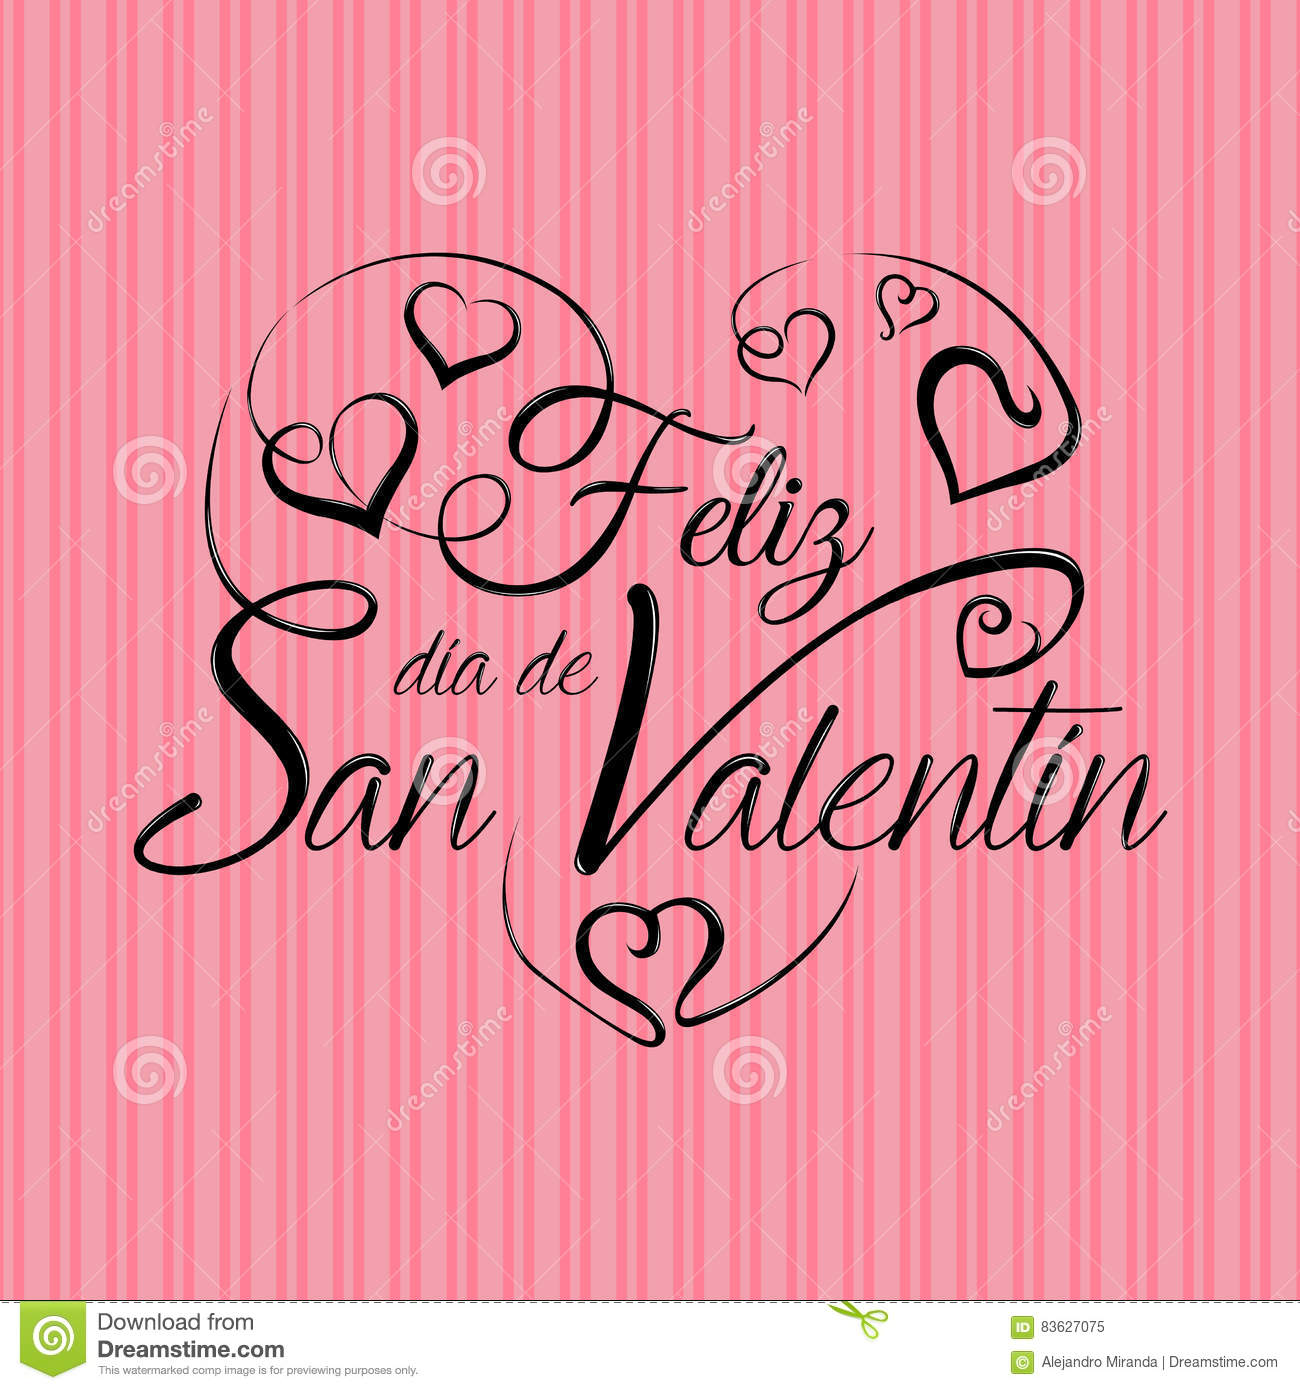 Lettering: Feliz Dia De San Valentin  Happy Valentines Day In Spanish  Language  In Black Ink On A Pink Background